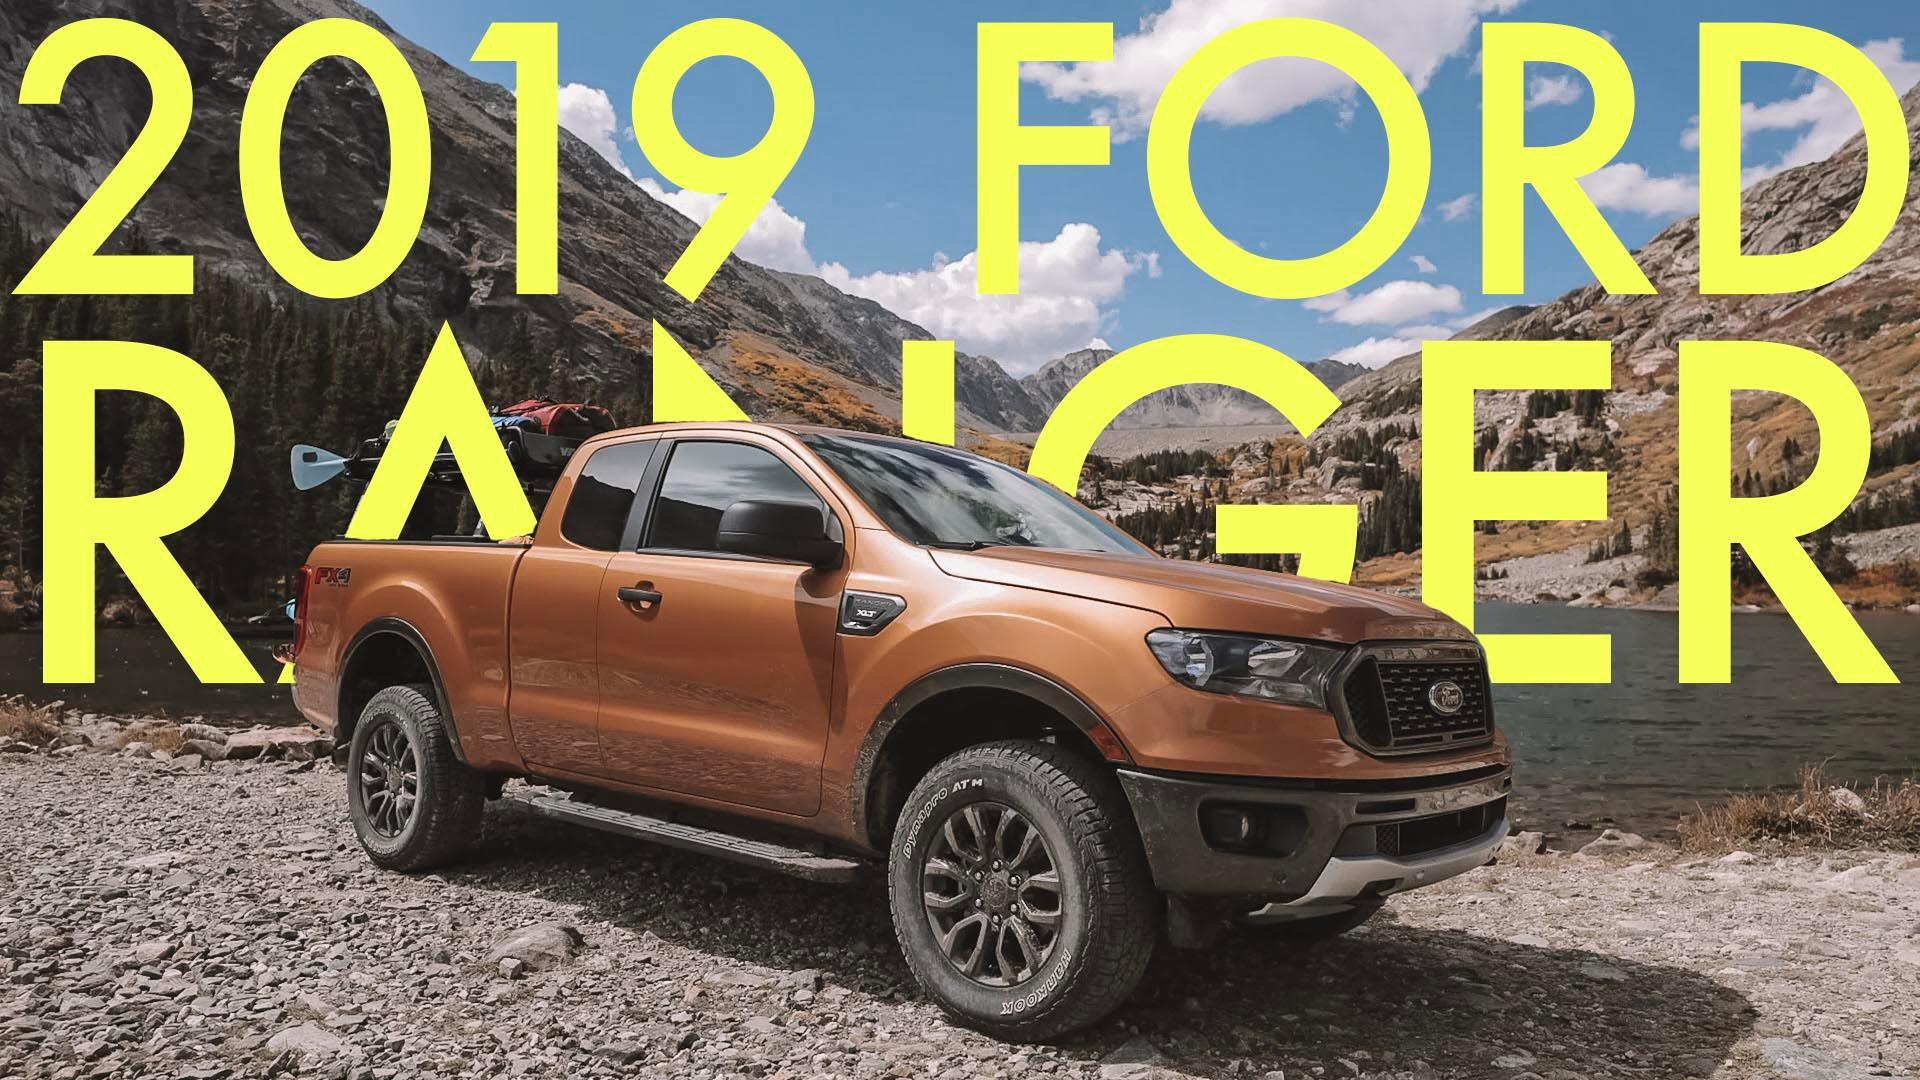 40 Ford Ranger has been issued a shifter related recall   Autoblog